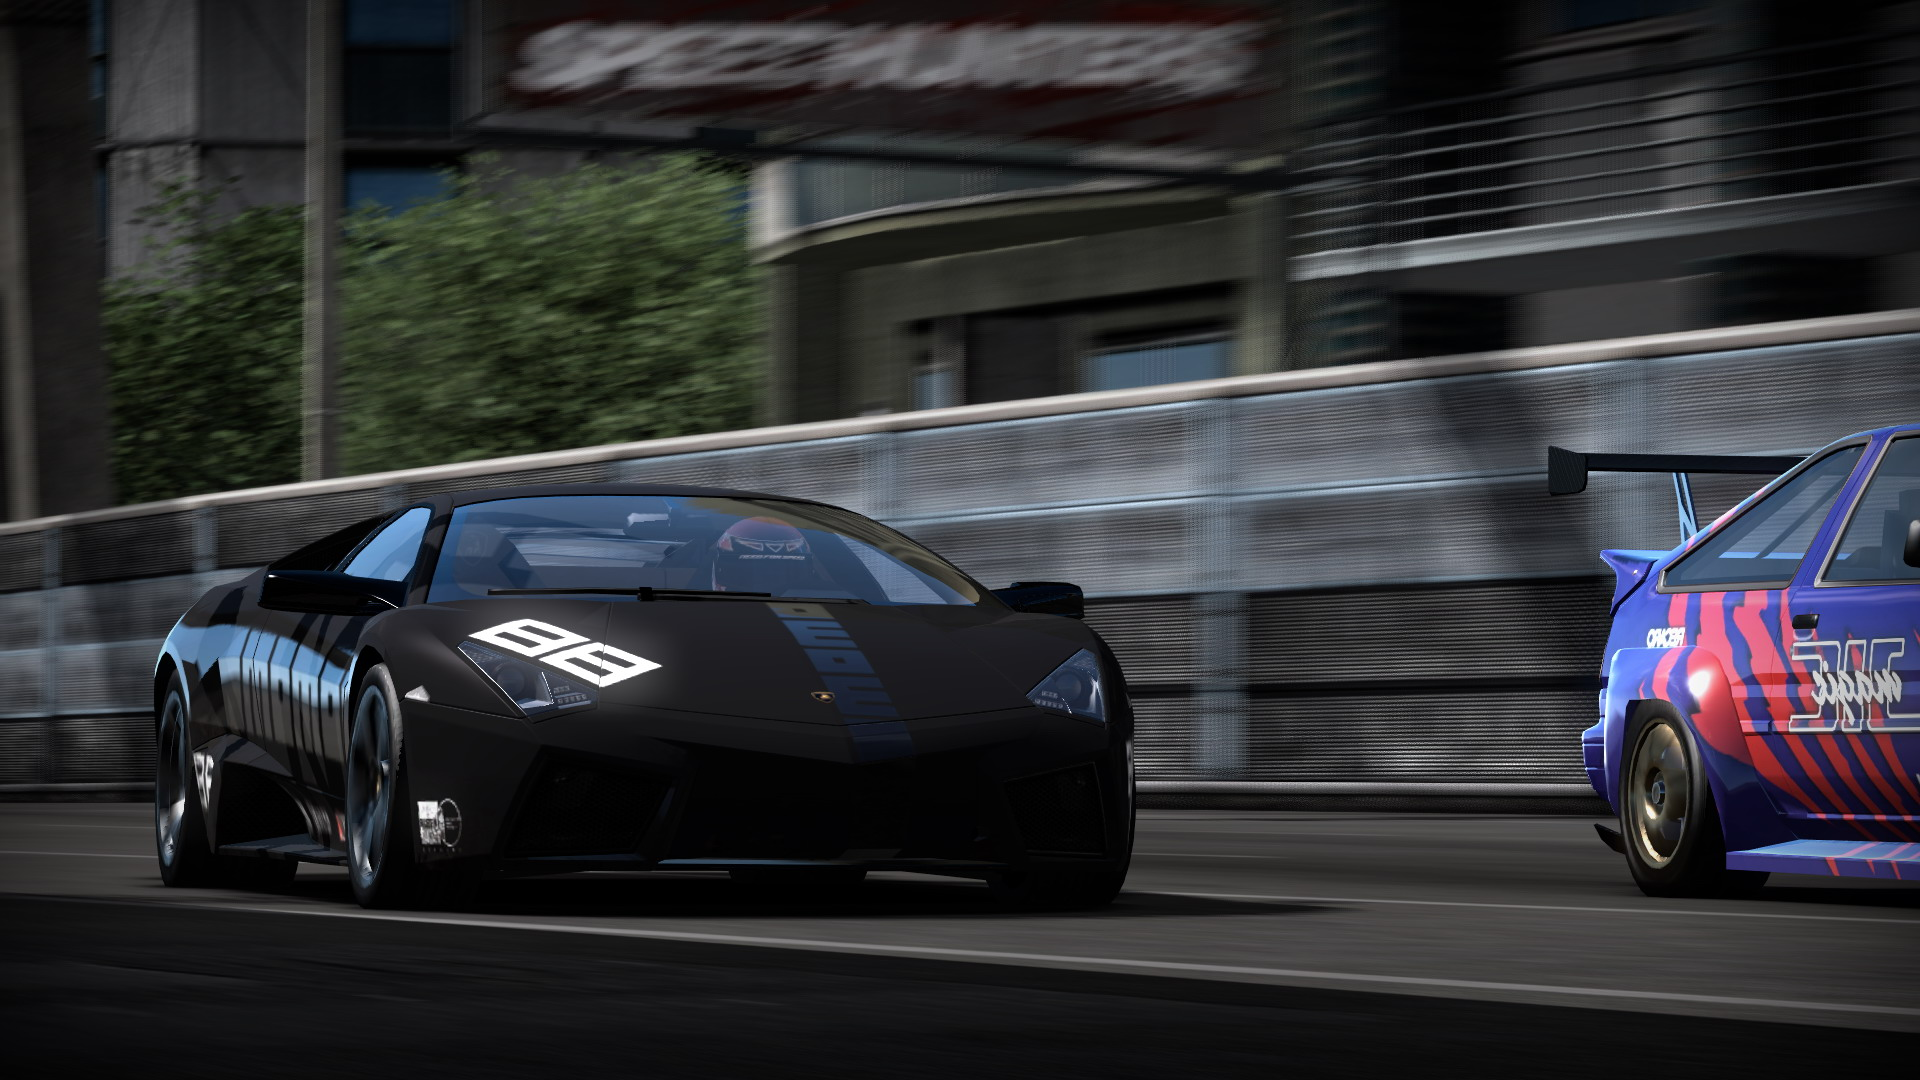 Need for speed hd wallpaper 42454